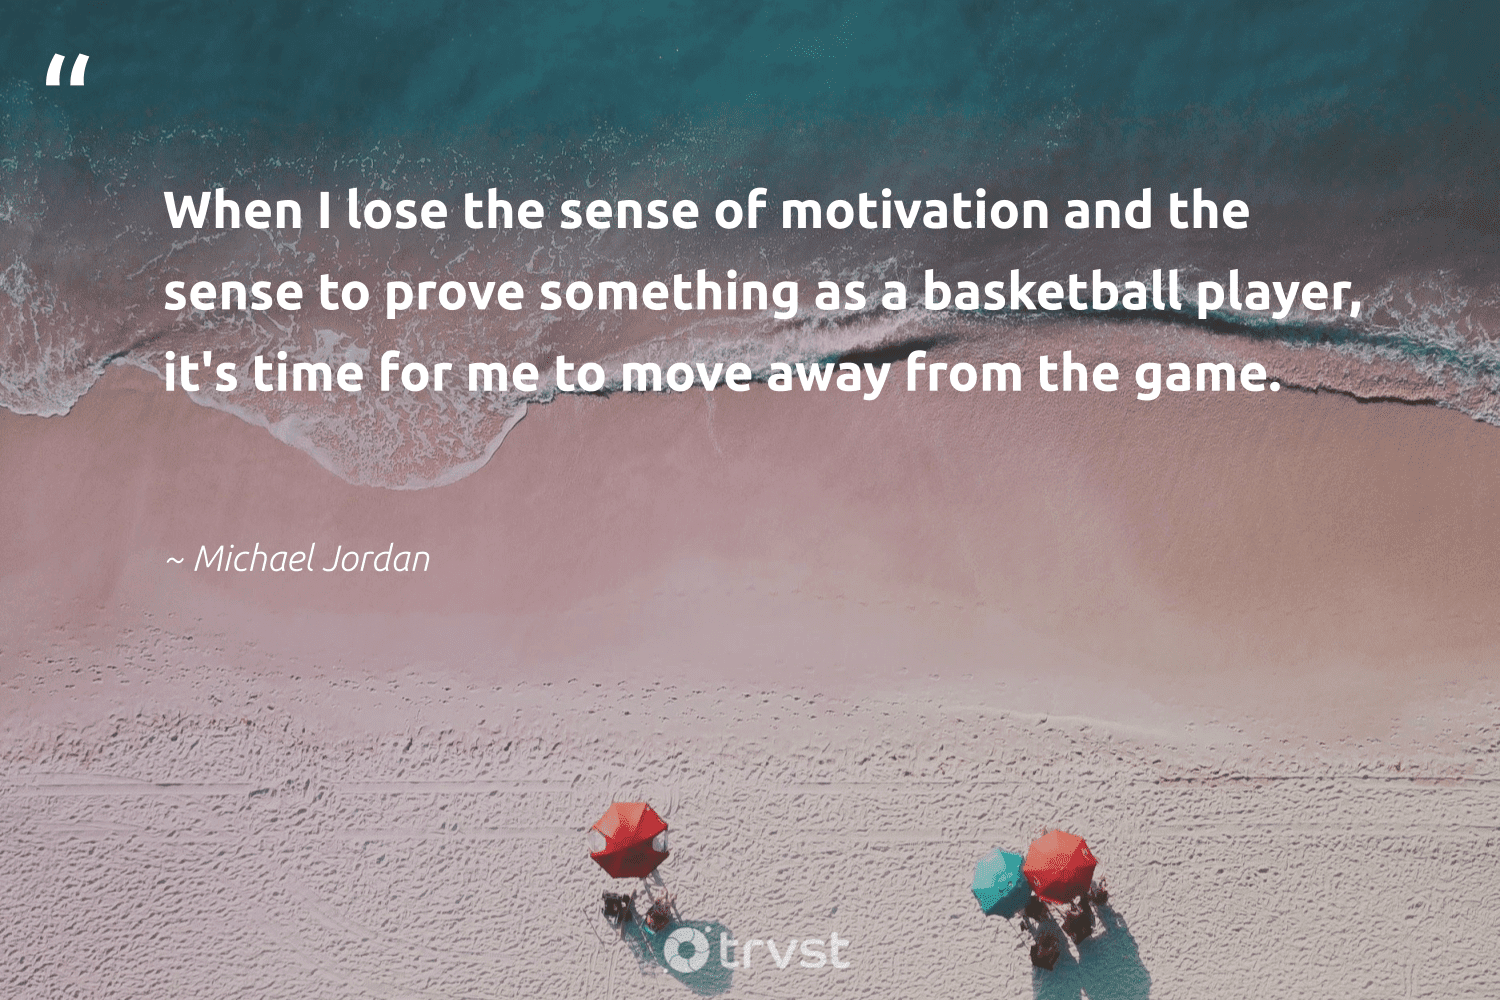 """""""When I lose the sense of motivation and the sense to prove something as a basketball player, it's time for me to move away from the game.""""  - Michael Jordan #trvst #quotes #motivation #goals #believeinyourself #changemakers #collectiveaction #mindful #domore #health #socialimpact #entrepreneurmindset"""